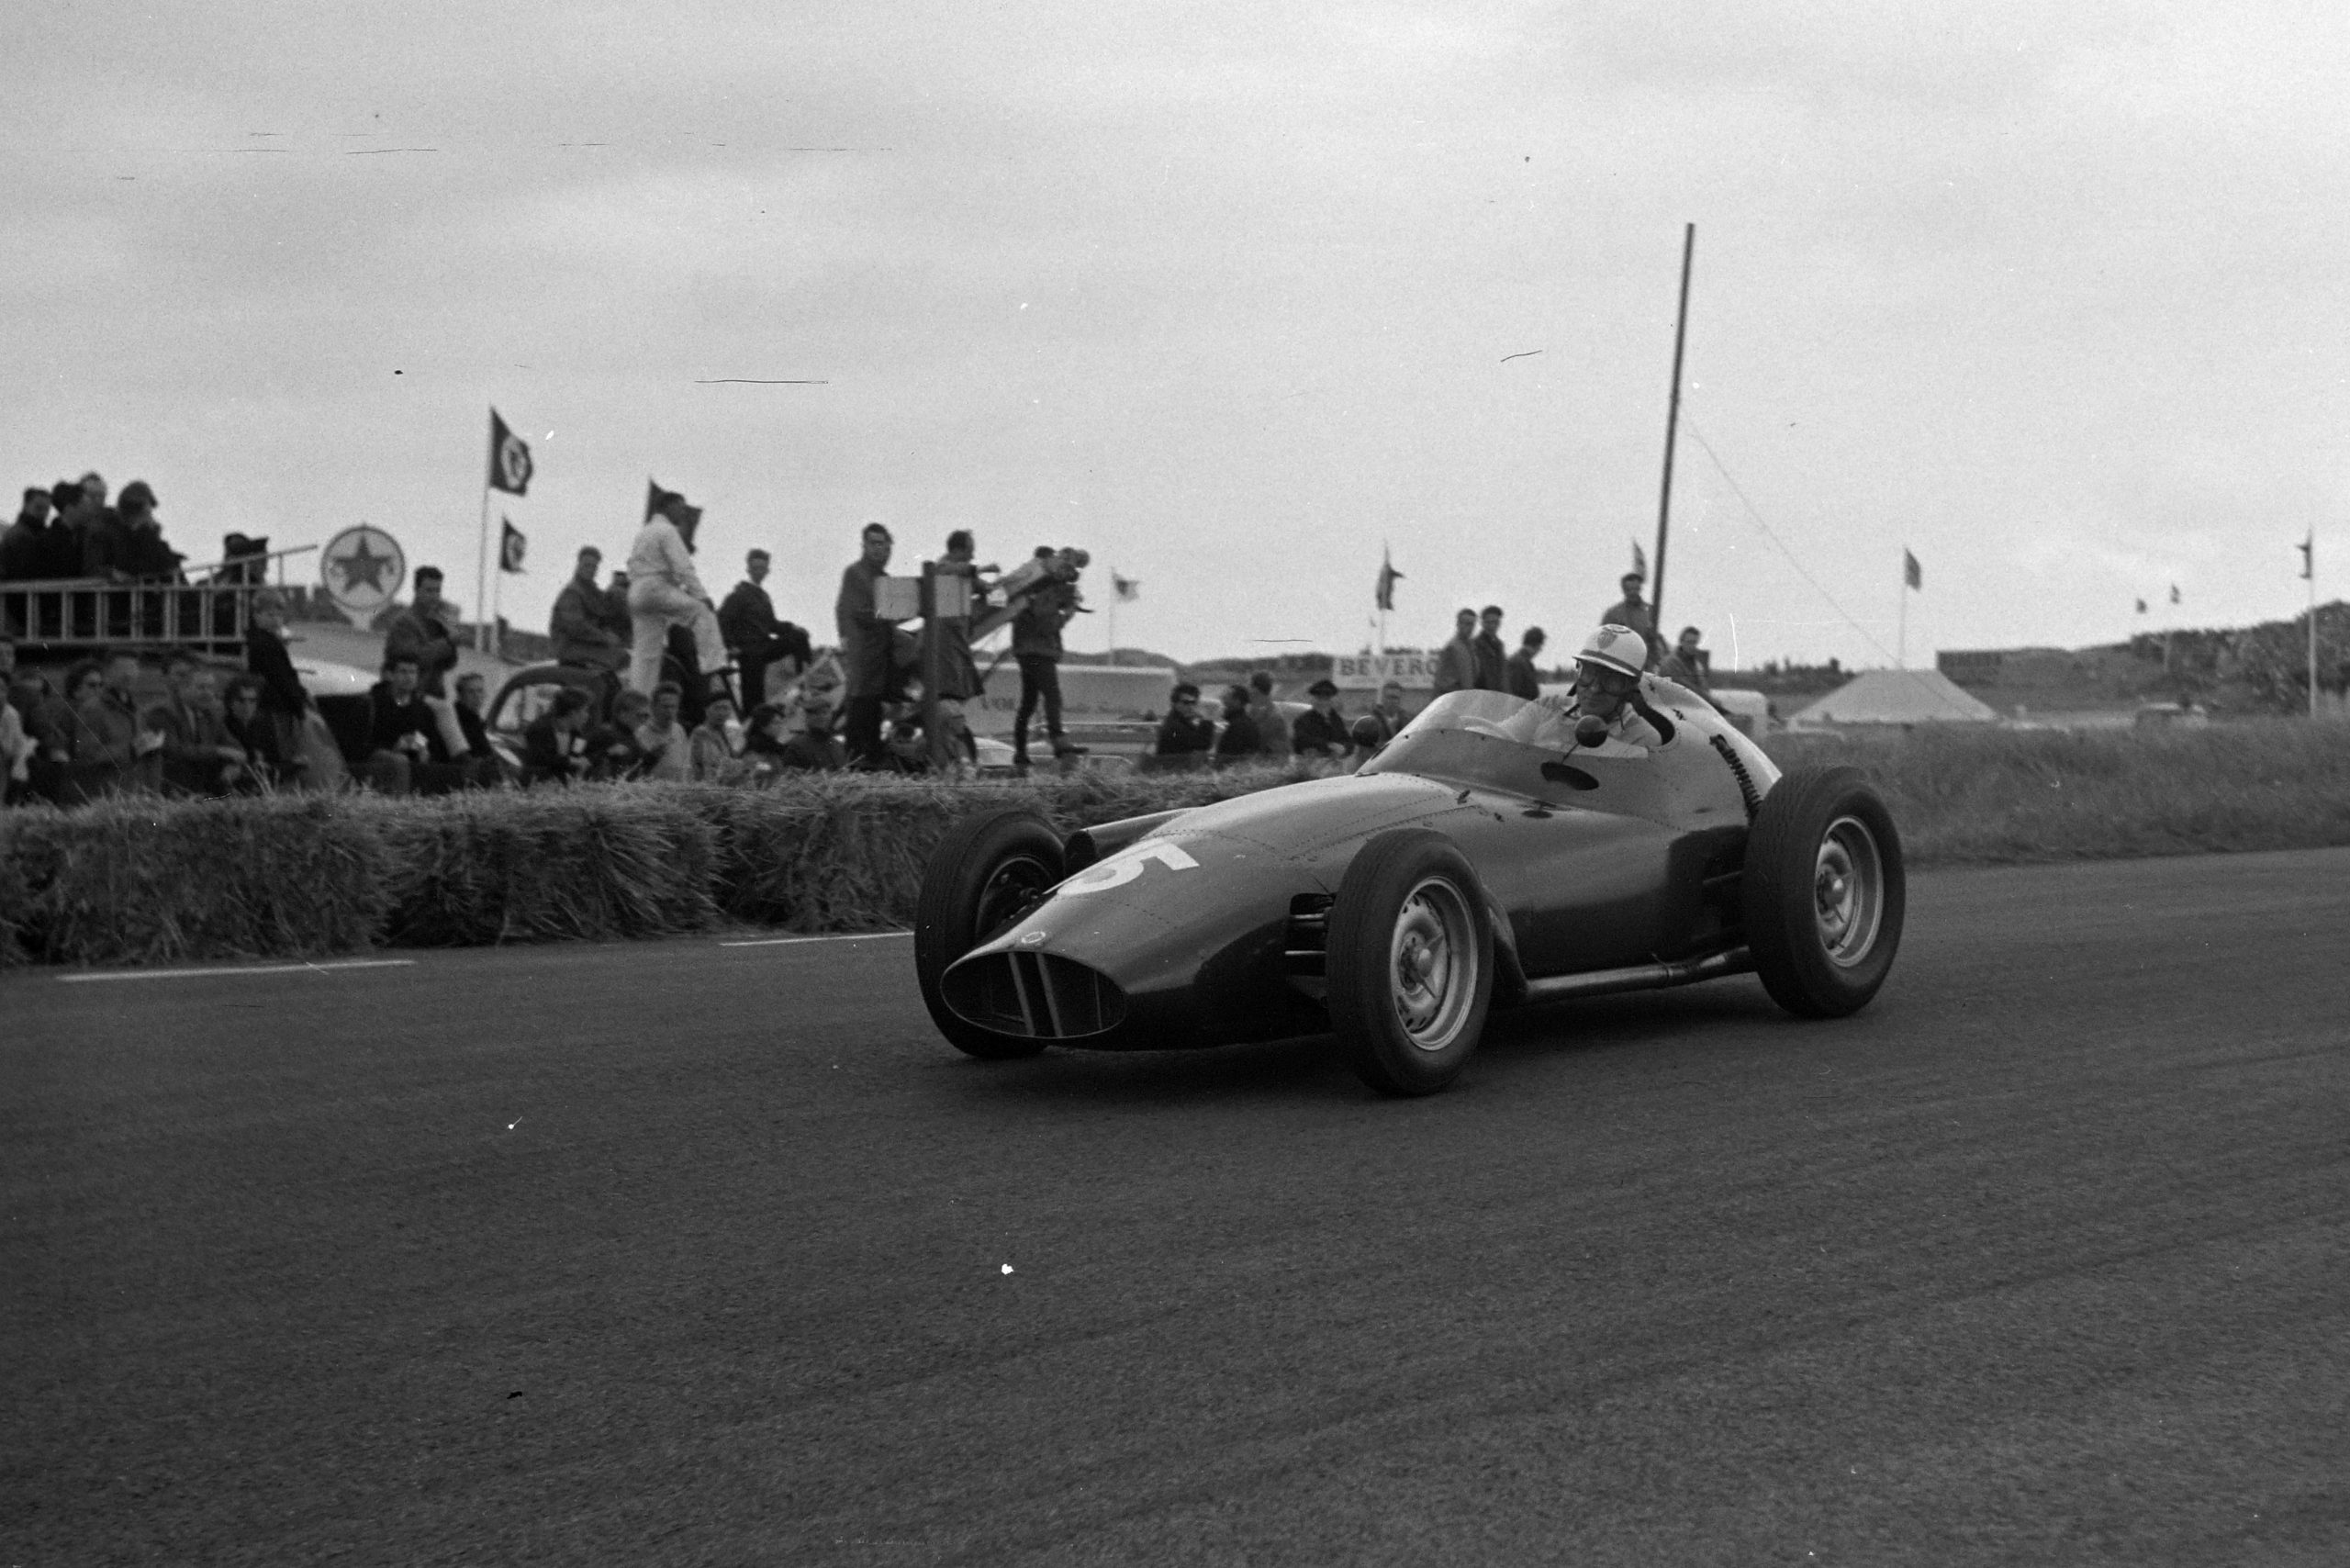 Harry Schell driving his BRM P25.